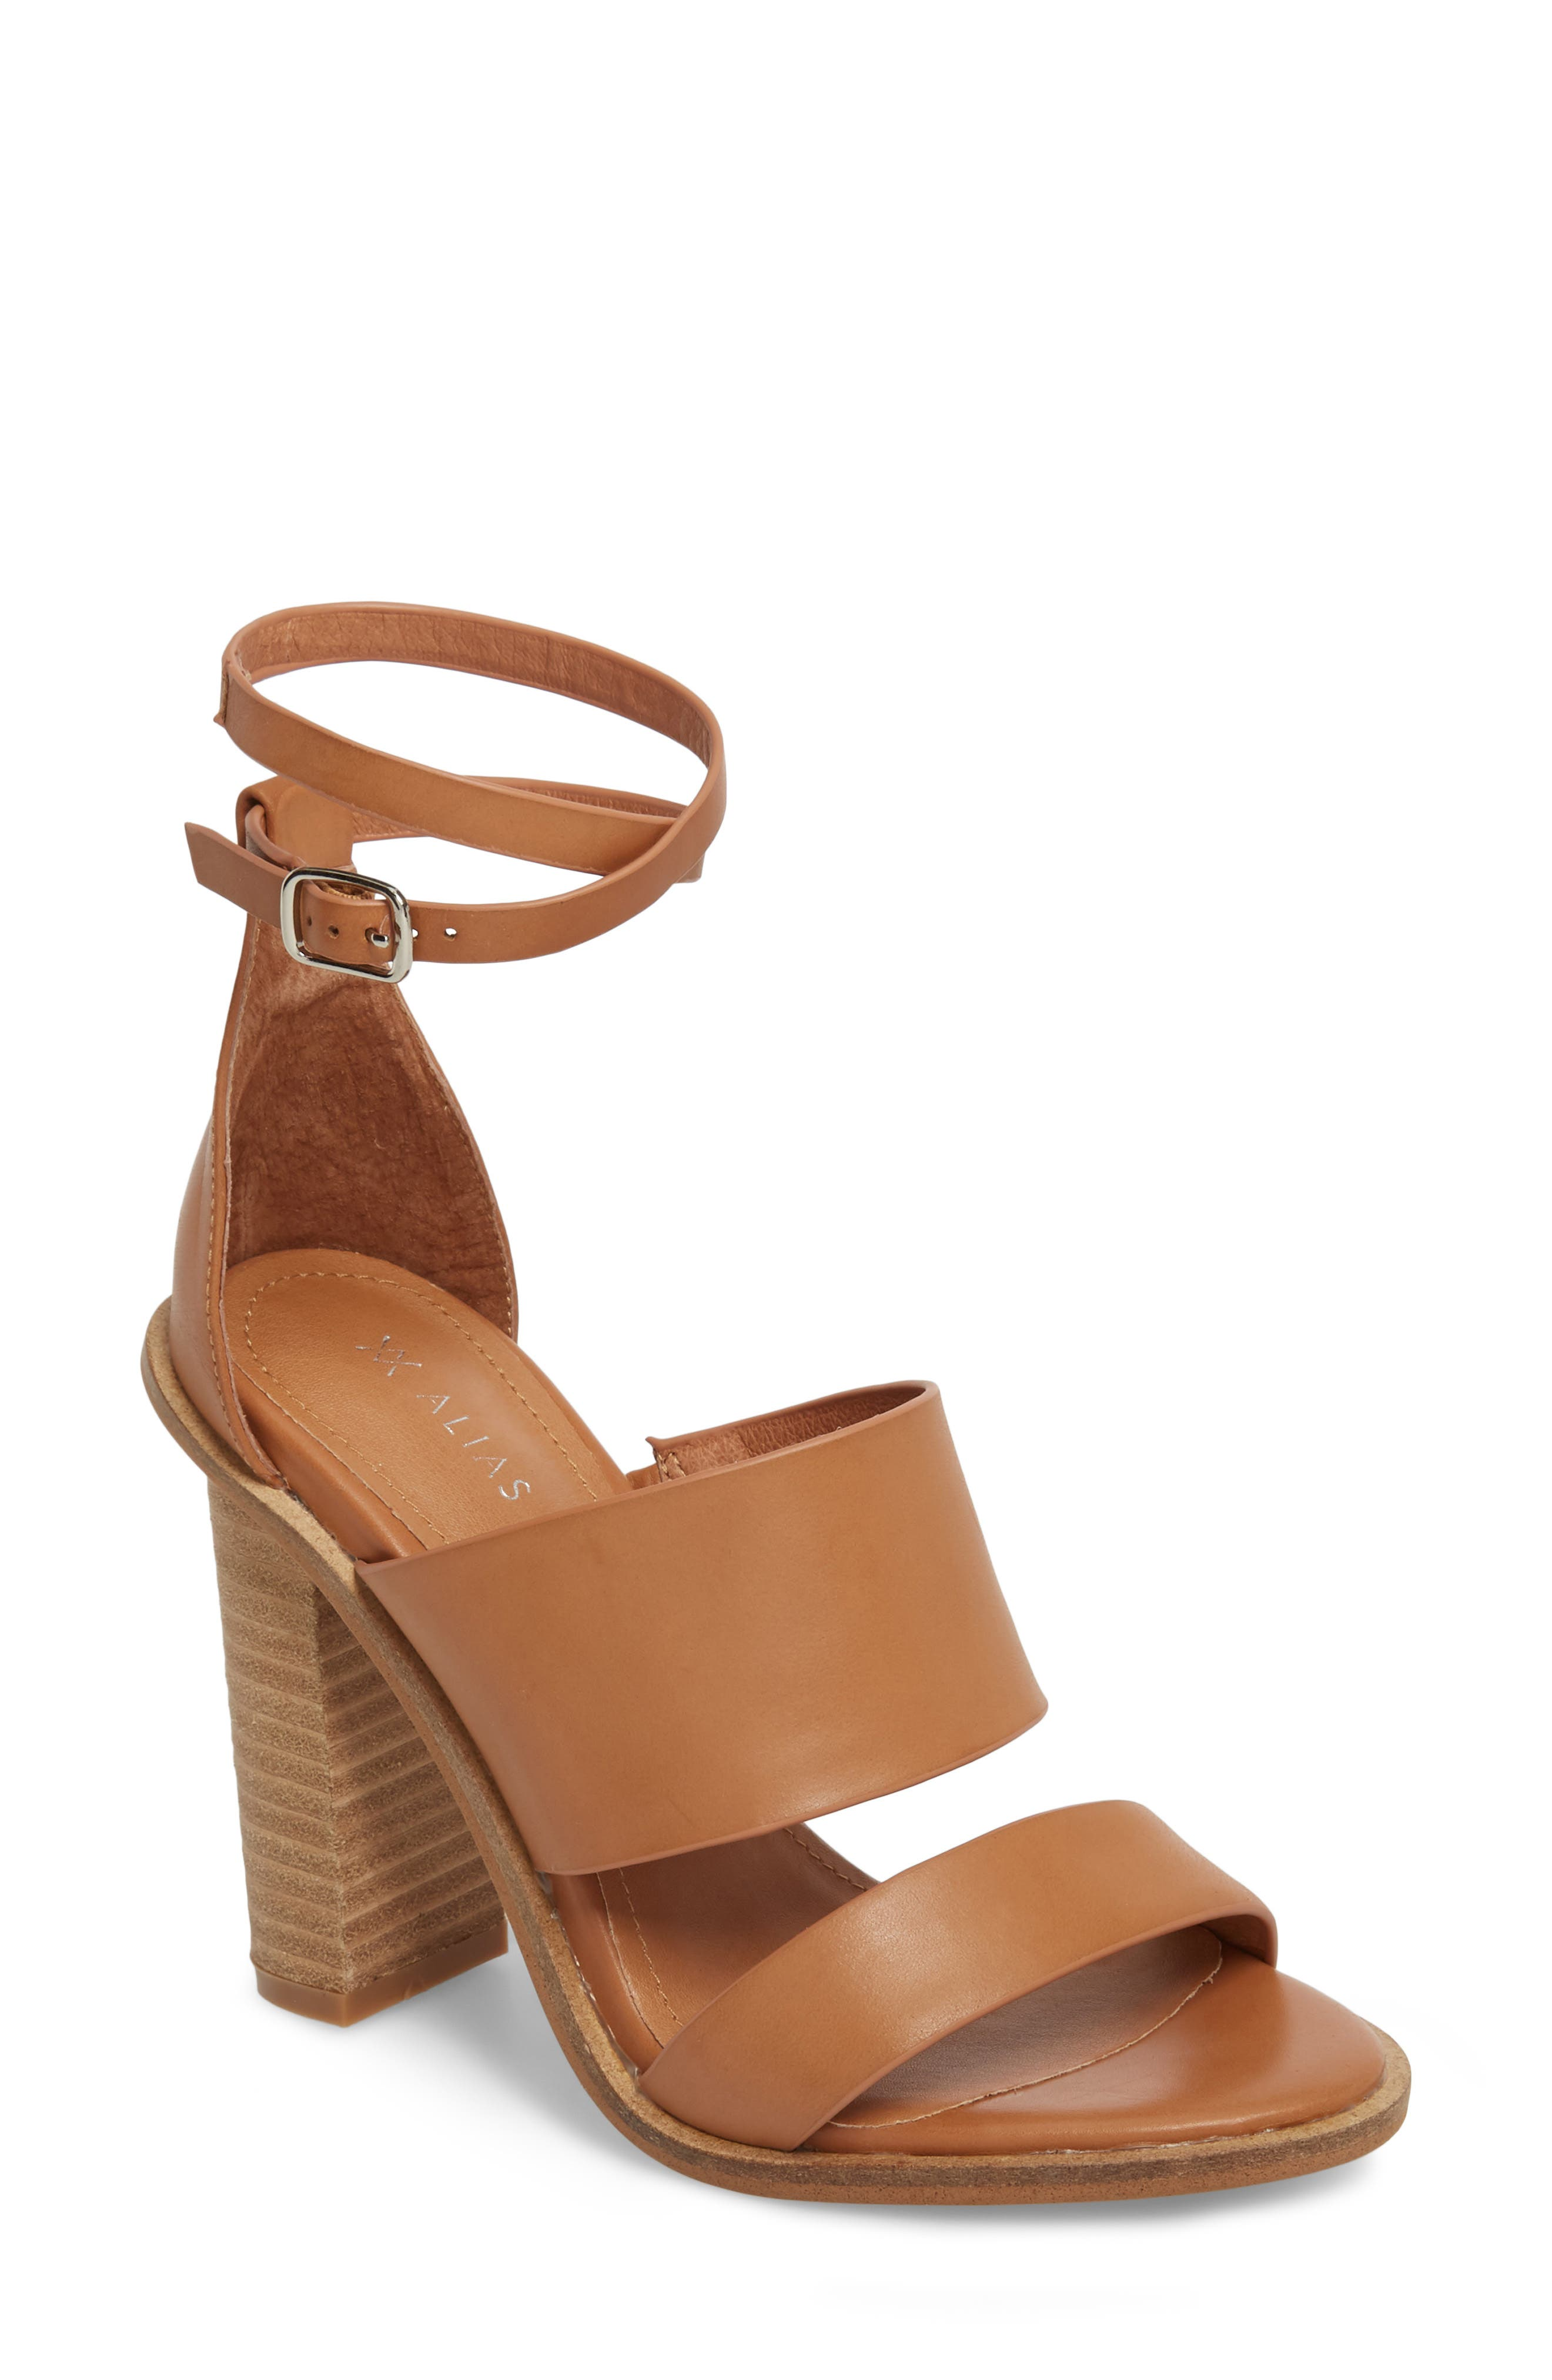 Admiral Ankle Wrap Sandal,                         Main,                         color,